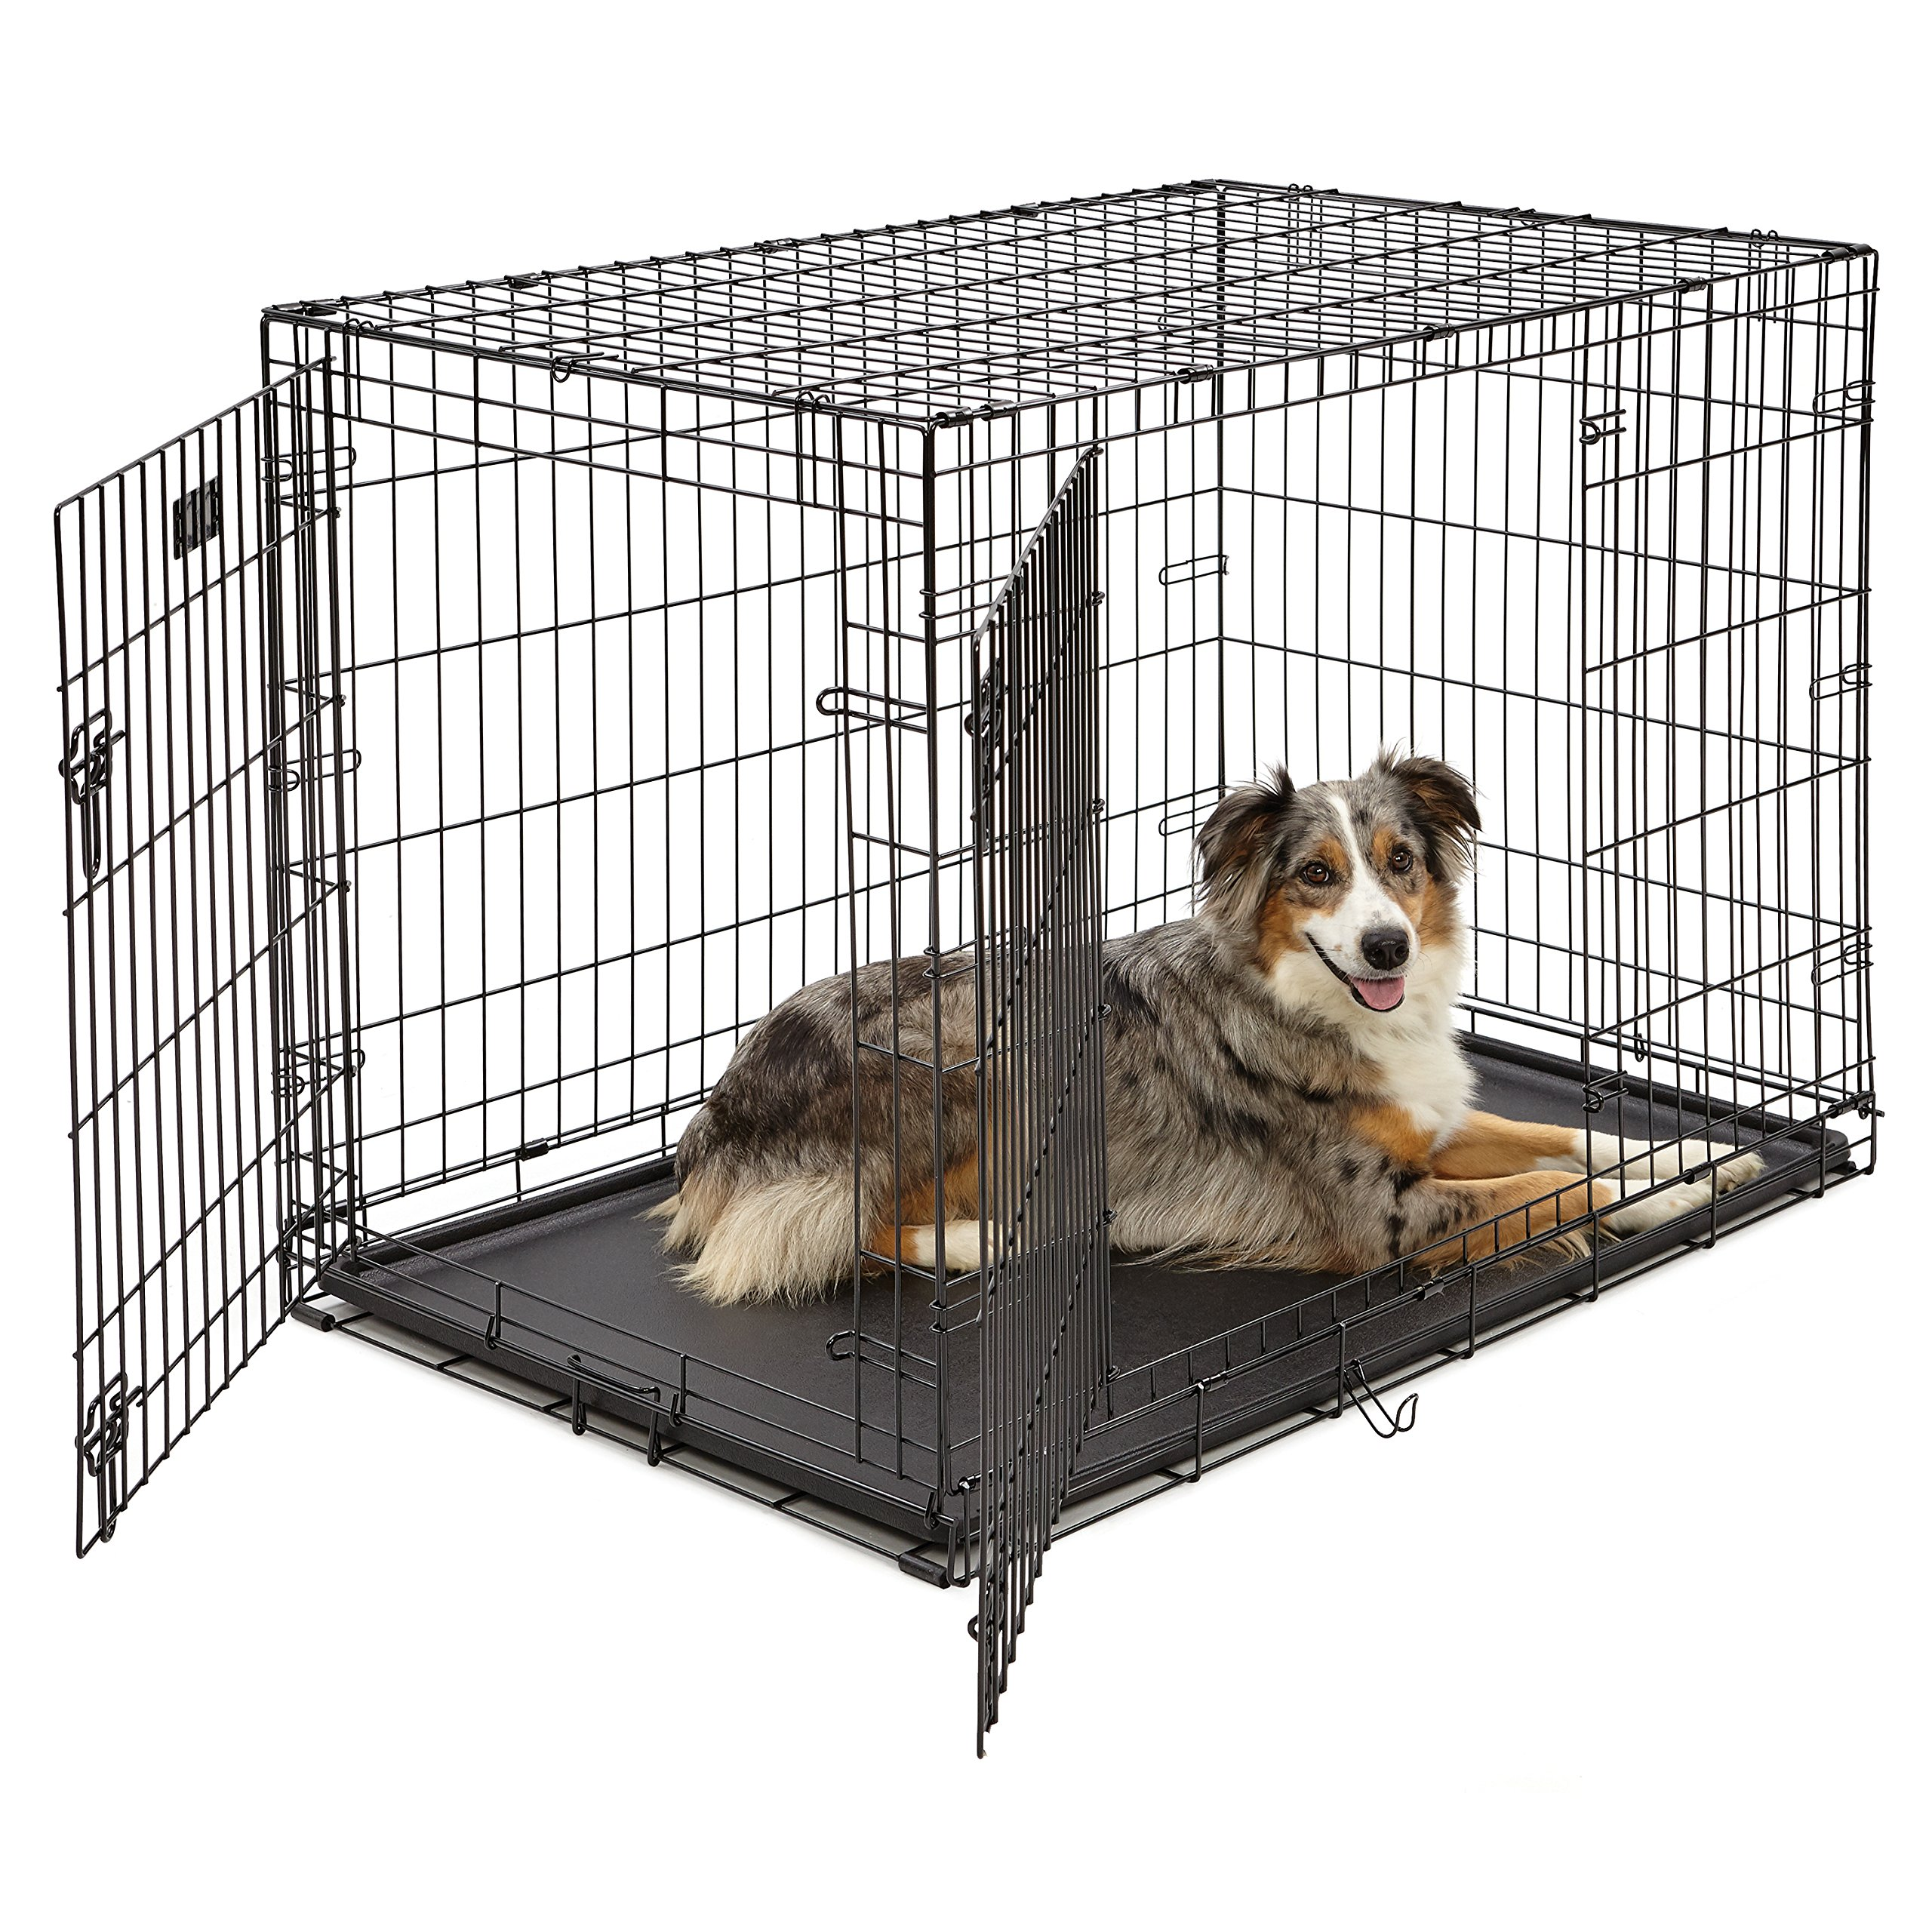 Large Dog Crate | MidWest iCrate Double Door Folding Metal Dog Crate | Divider Panel, Floor Protecting Feet, Leak-Proof Dog Tray | 42L x 28W x 30H Inches, Large Dog, Black by MidWest Homes for Pets